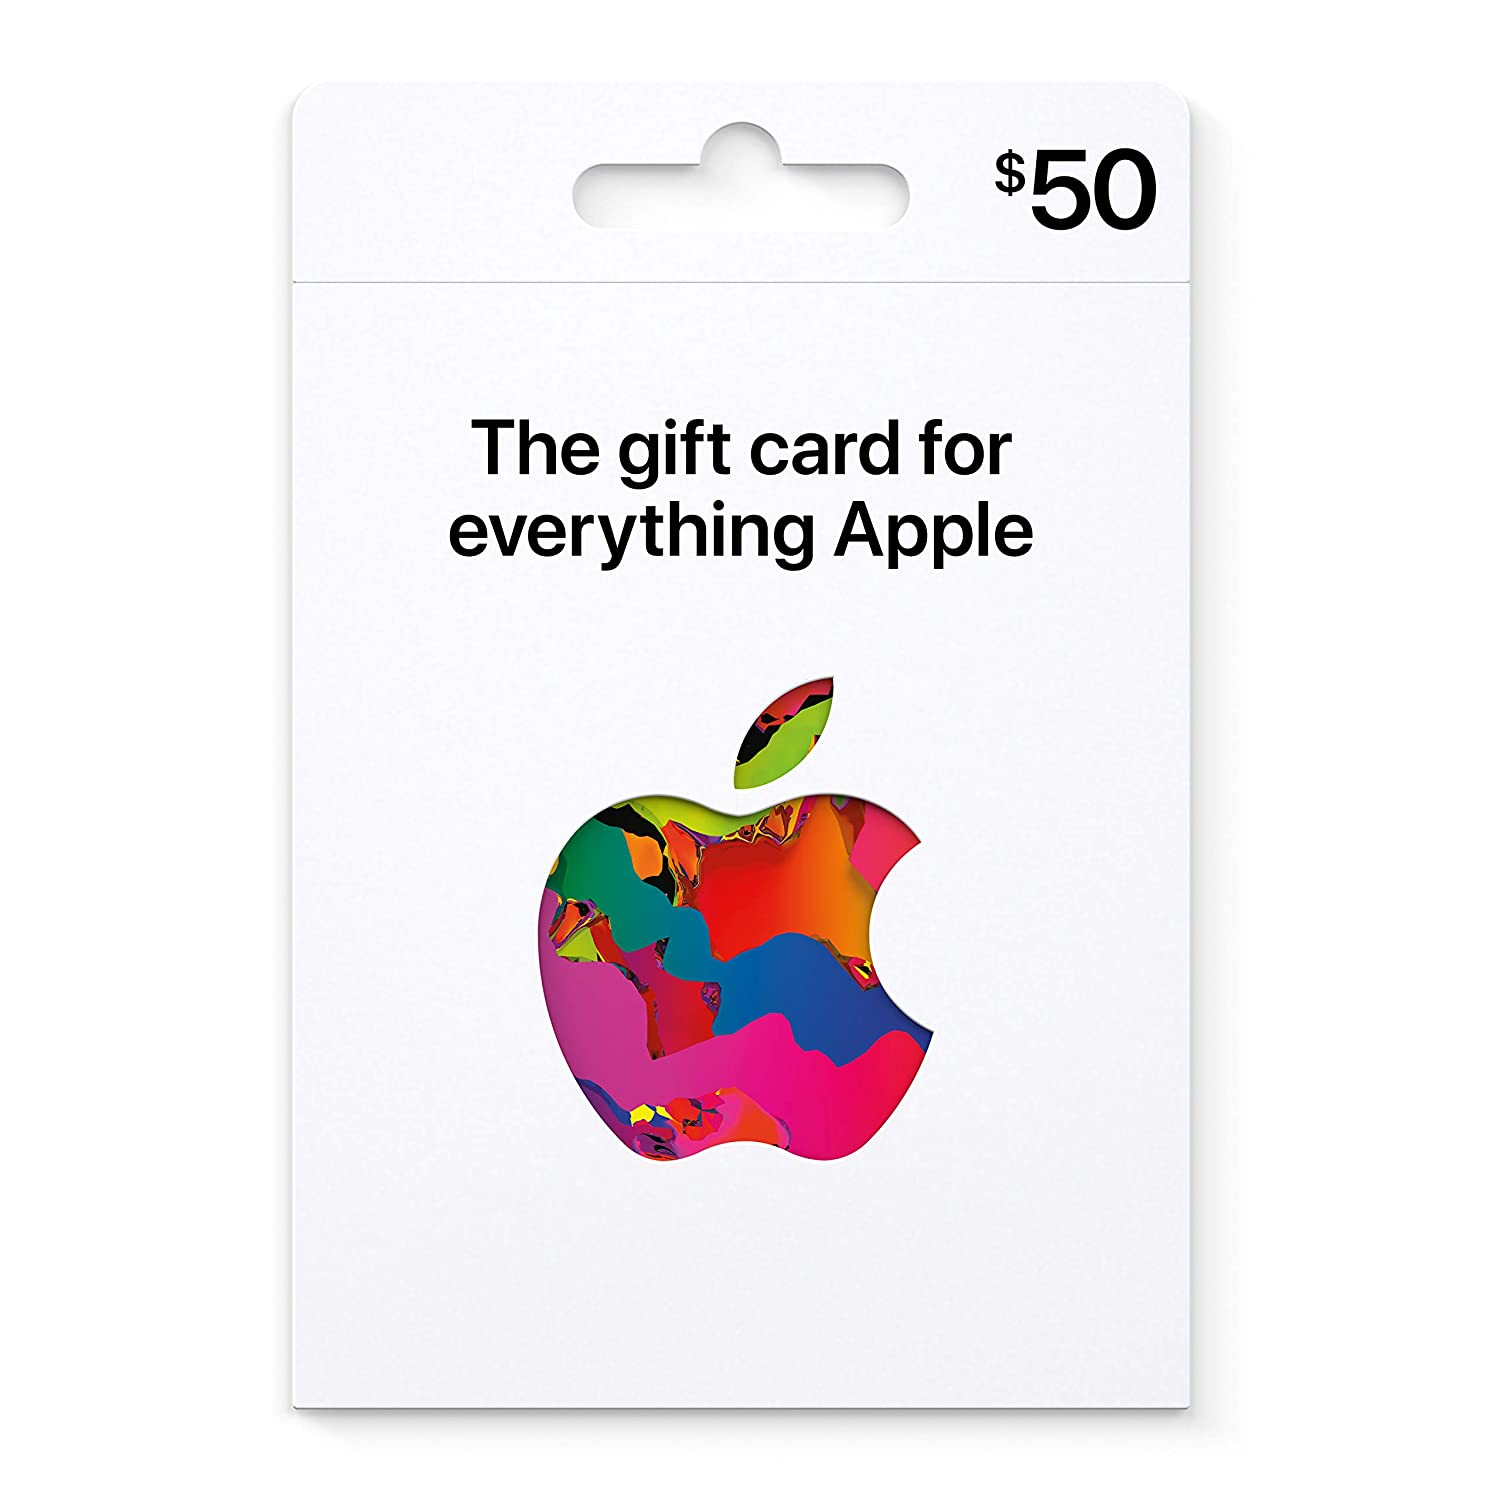 Buy Apple Gift Card - App Store, iTunes, iPhone, iPad, AirPods